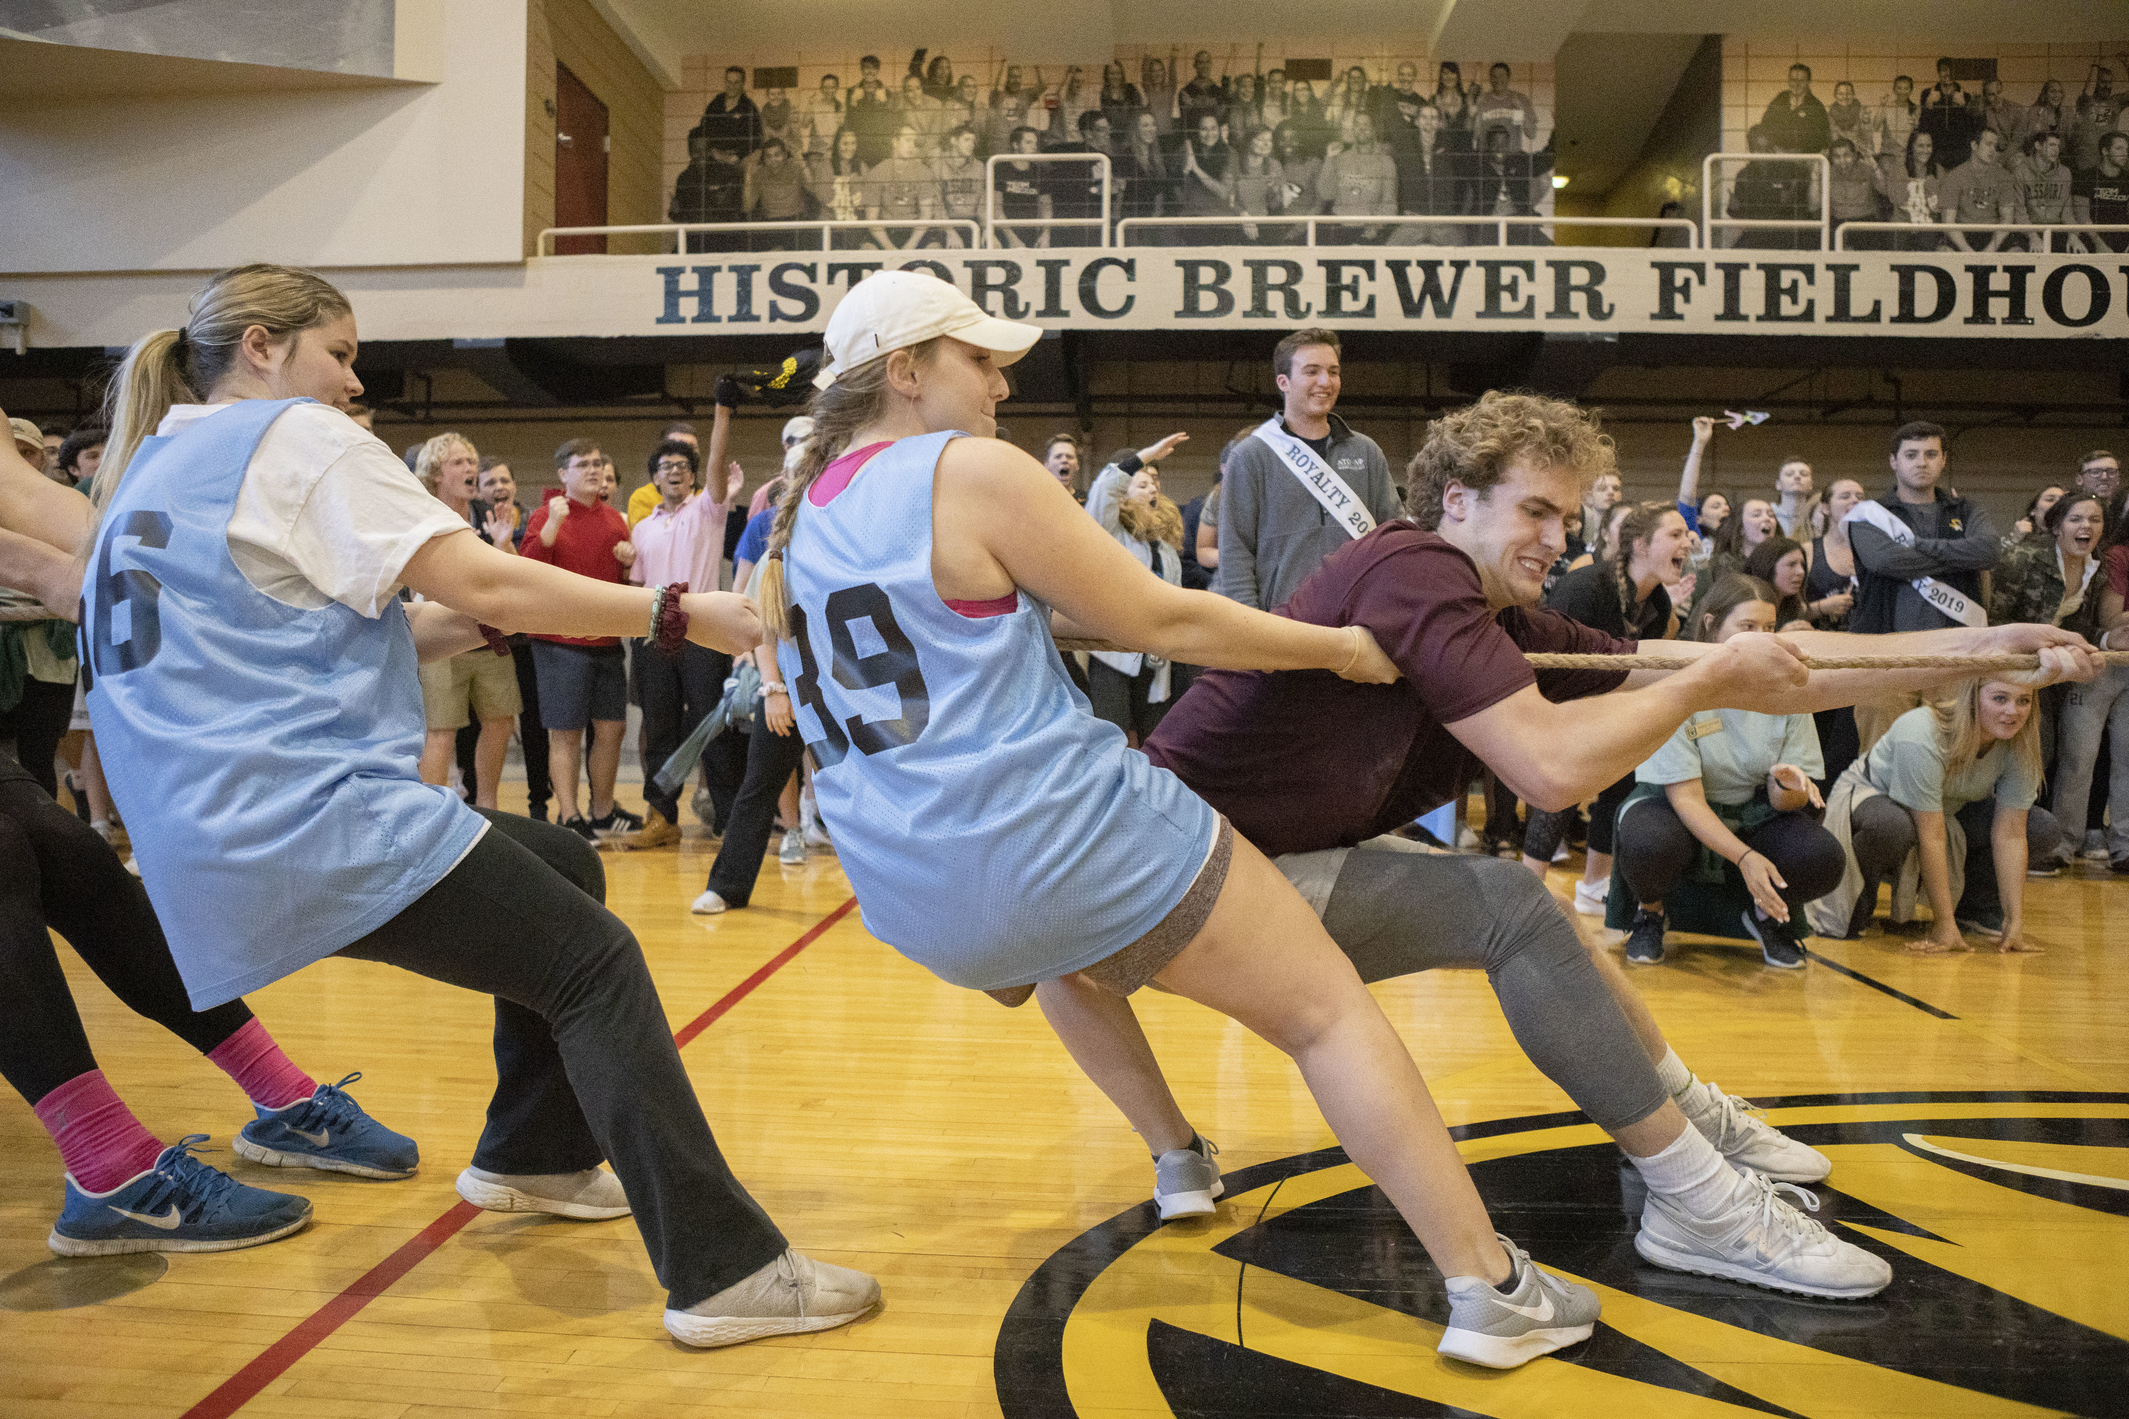 Greek Week Tug of War at the MizzouRec on Sunday, April. 14, 2019. Monique Woo/University of Missouri